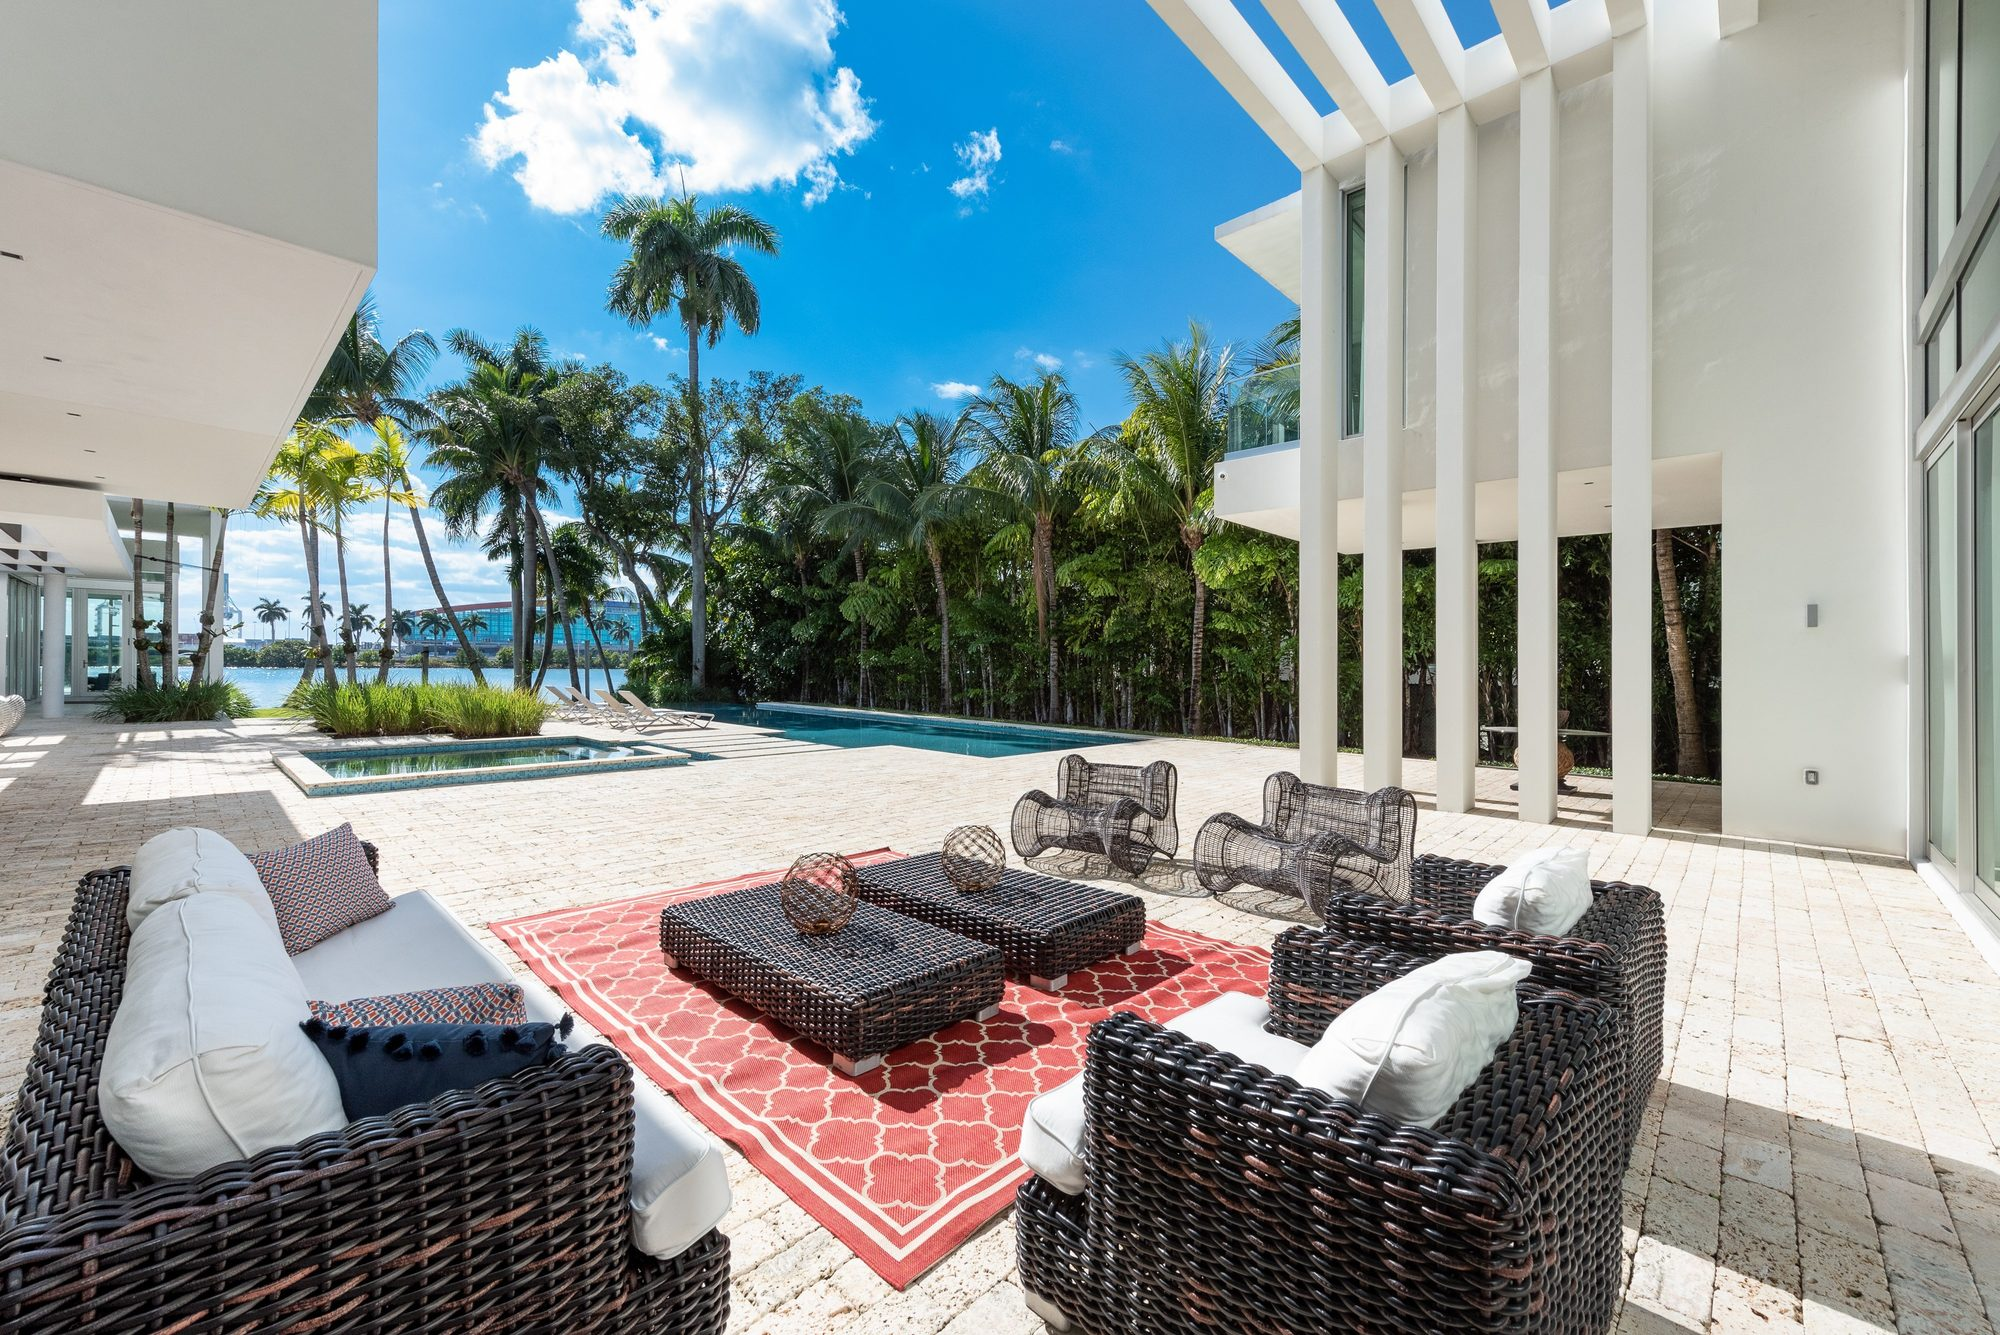 Woven dark brown patio set with a modern vibe. White cushions, coffee tables and colorful throw pillows capped off by a stylish red outdoor area rug.